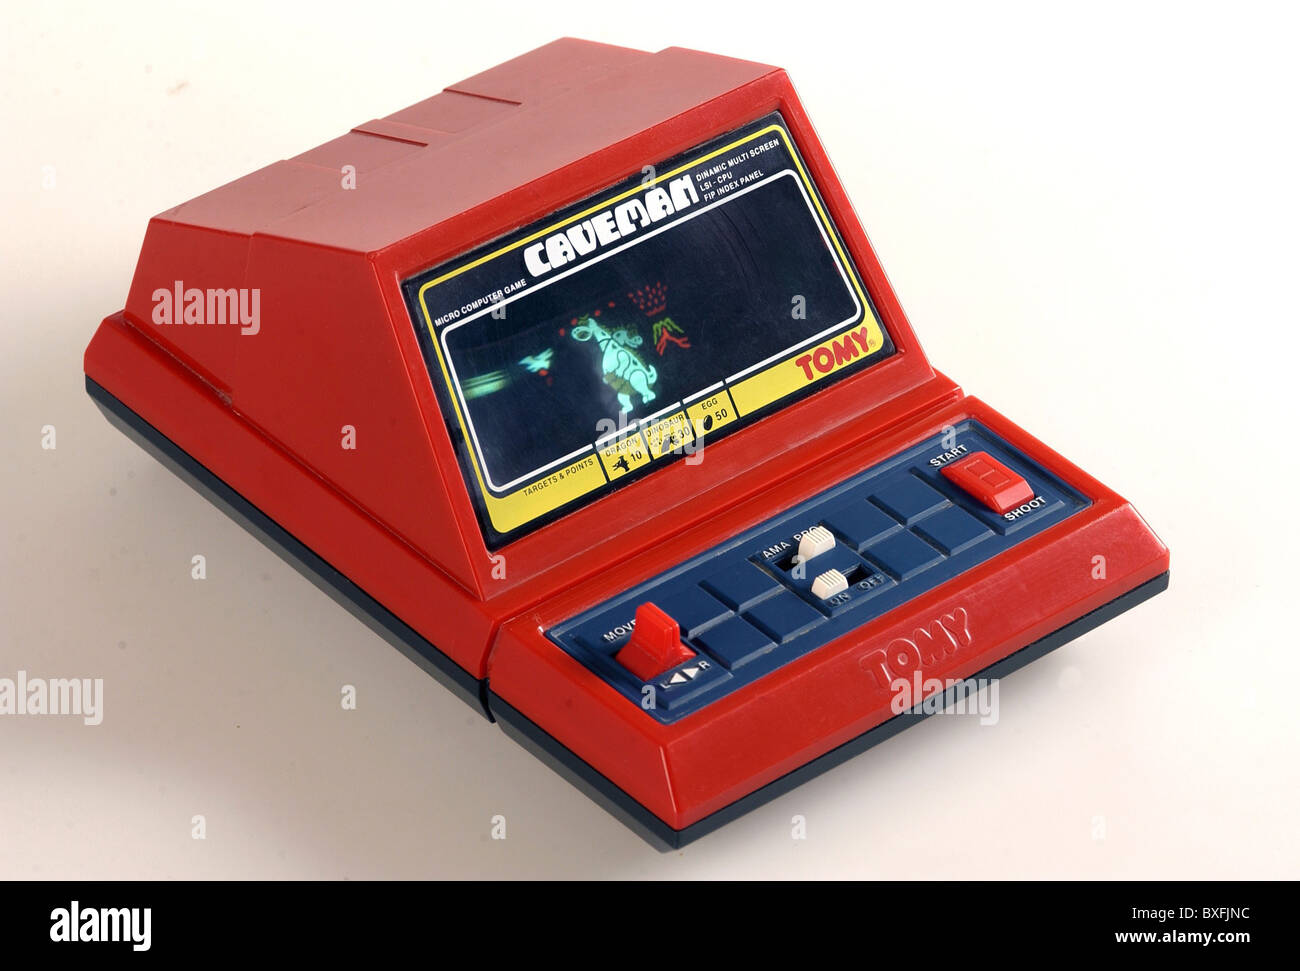 toys, Tomy Caveman, electronic toy by Tomy, Micro Computer Game, Japan, 1982, Additional-Rights-Clearences-NA - Stock Image